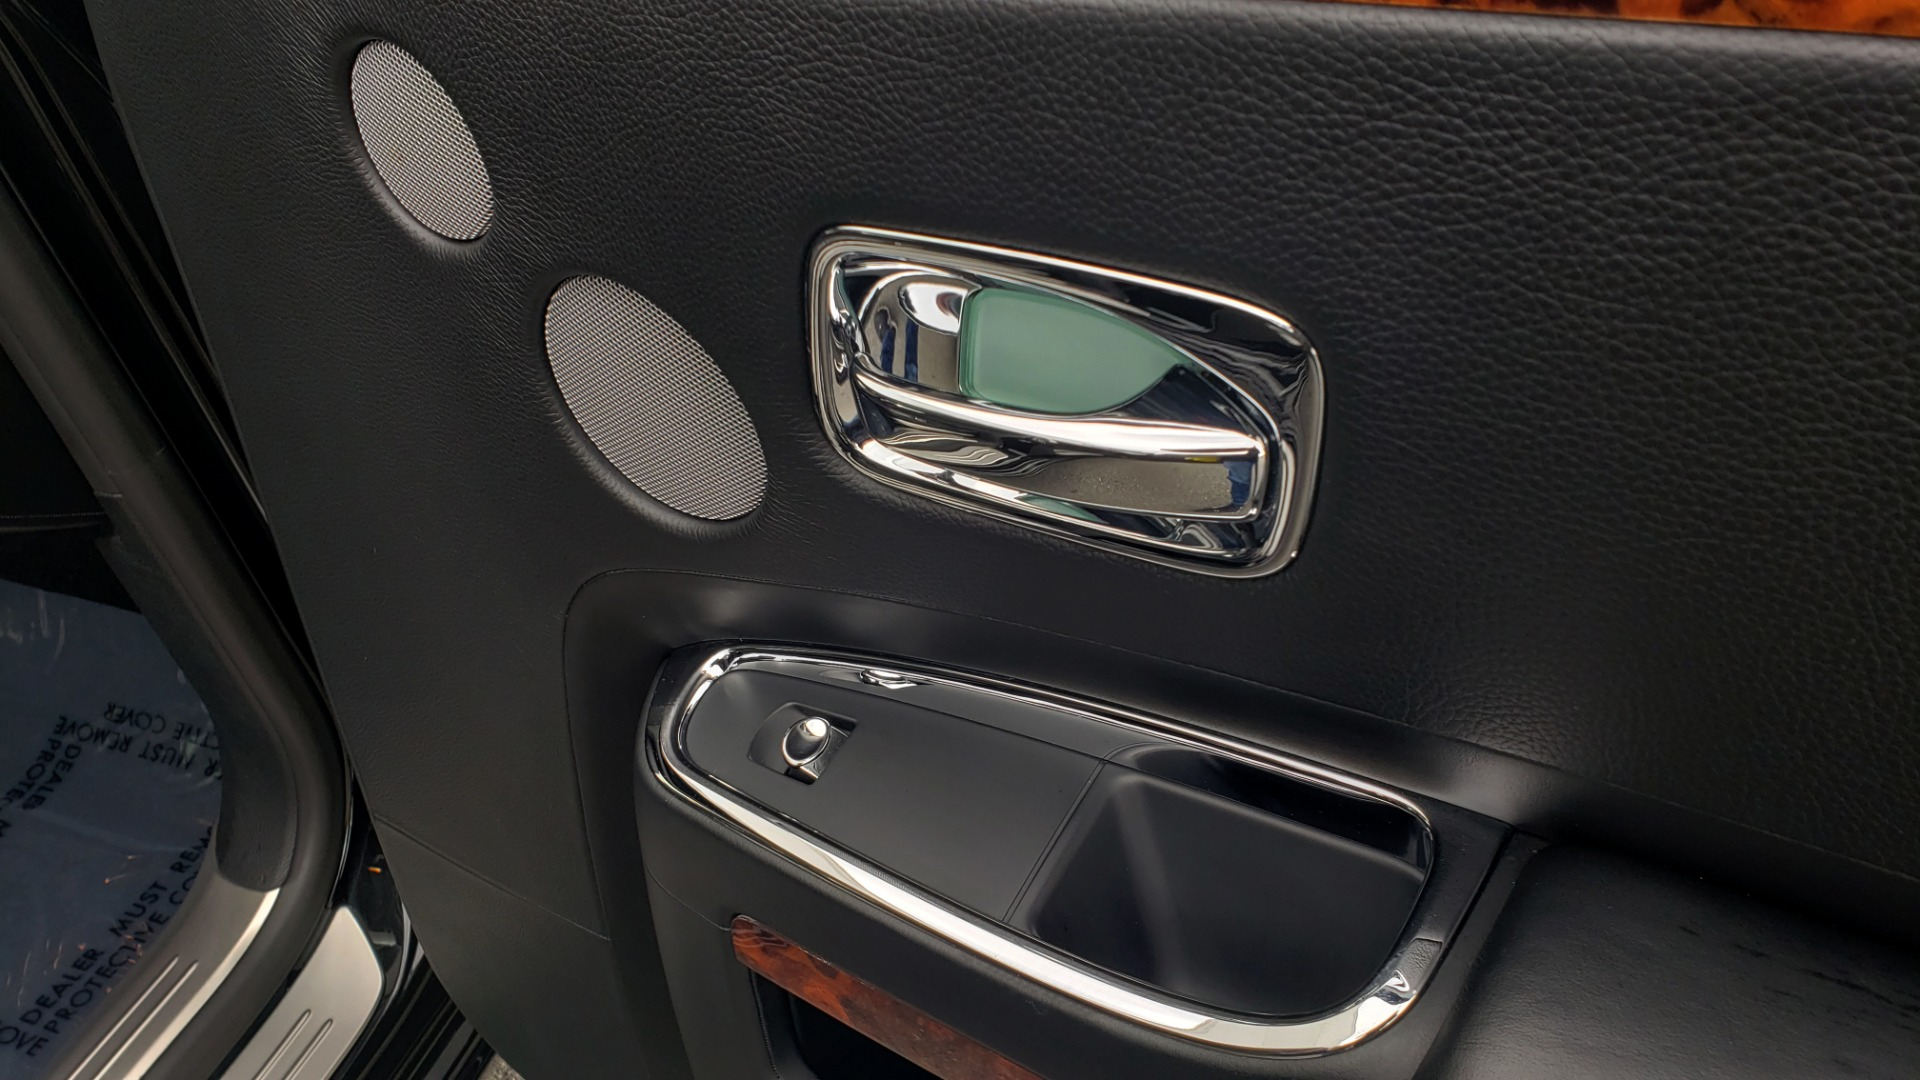 Used 2010 Rolls-Royce GHOST 6.6L TURBO V12 (563HP) / NAV / SUNROOF / SUICIDE DOORS for sale $89,000 at Formula Imports in Charlotte NC 28227 31